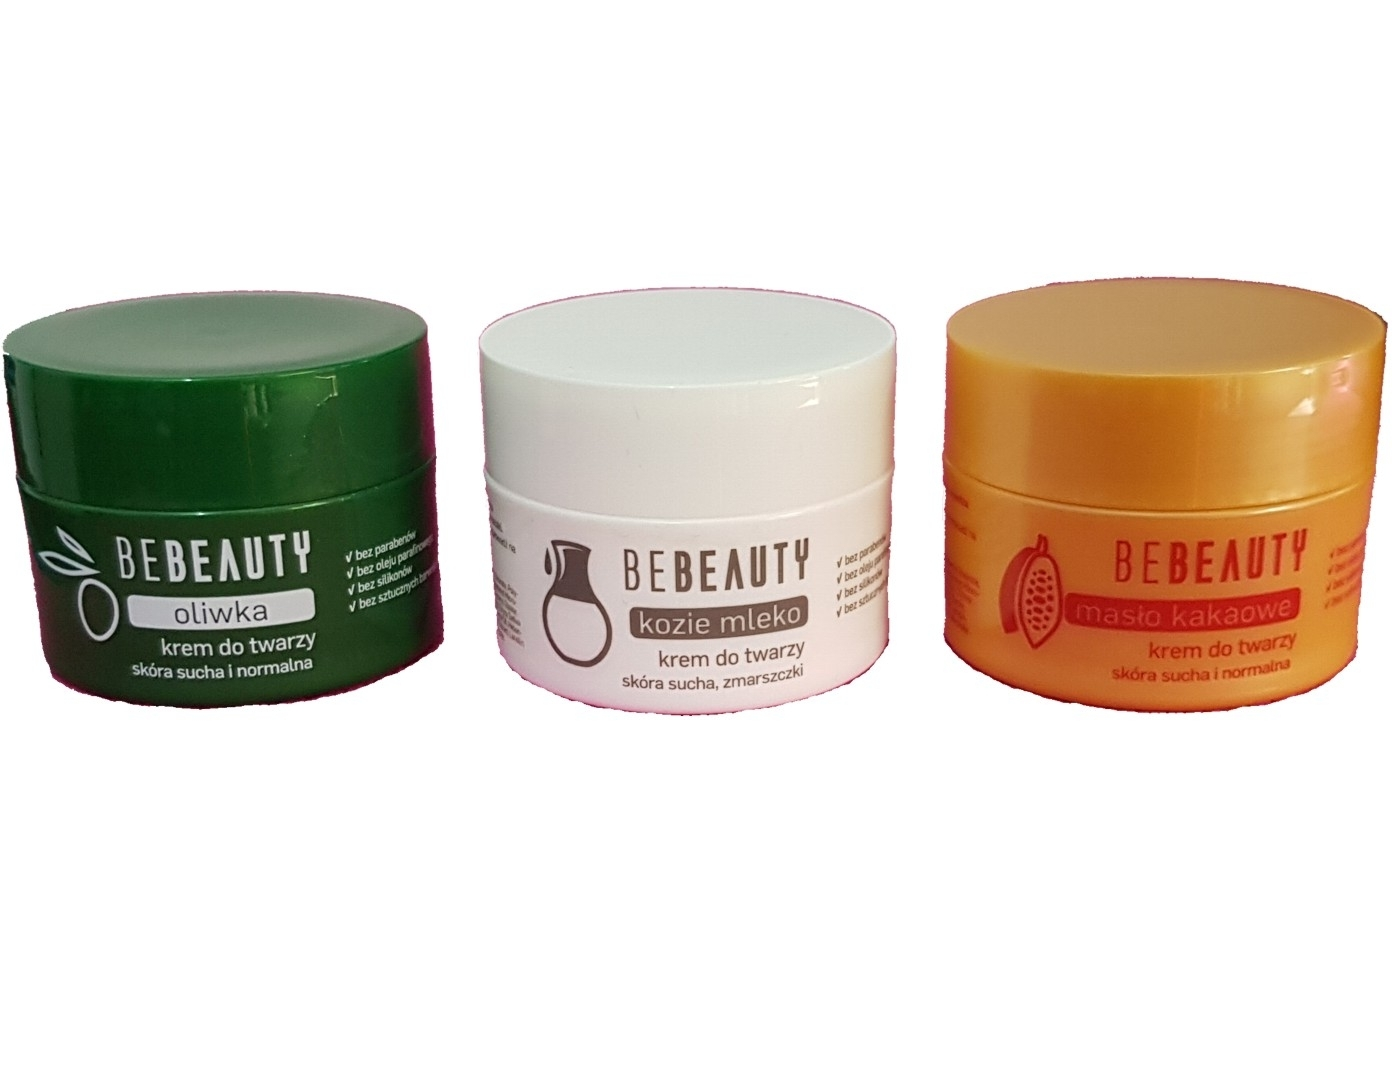 PACK 3 CREMAS BE BEAUTY OLIVA 50 ML REGULAR + LECHE DE CABRA 50 ML REGULAR + MANTECA DE CACAO 50 ML REGULAR